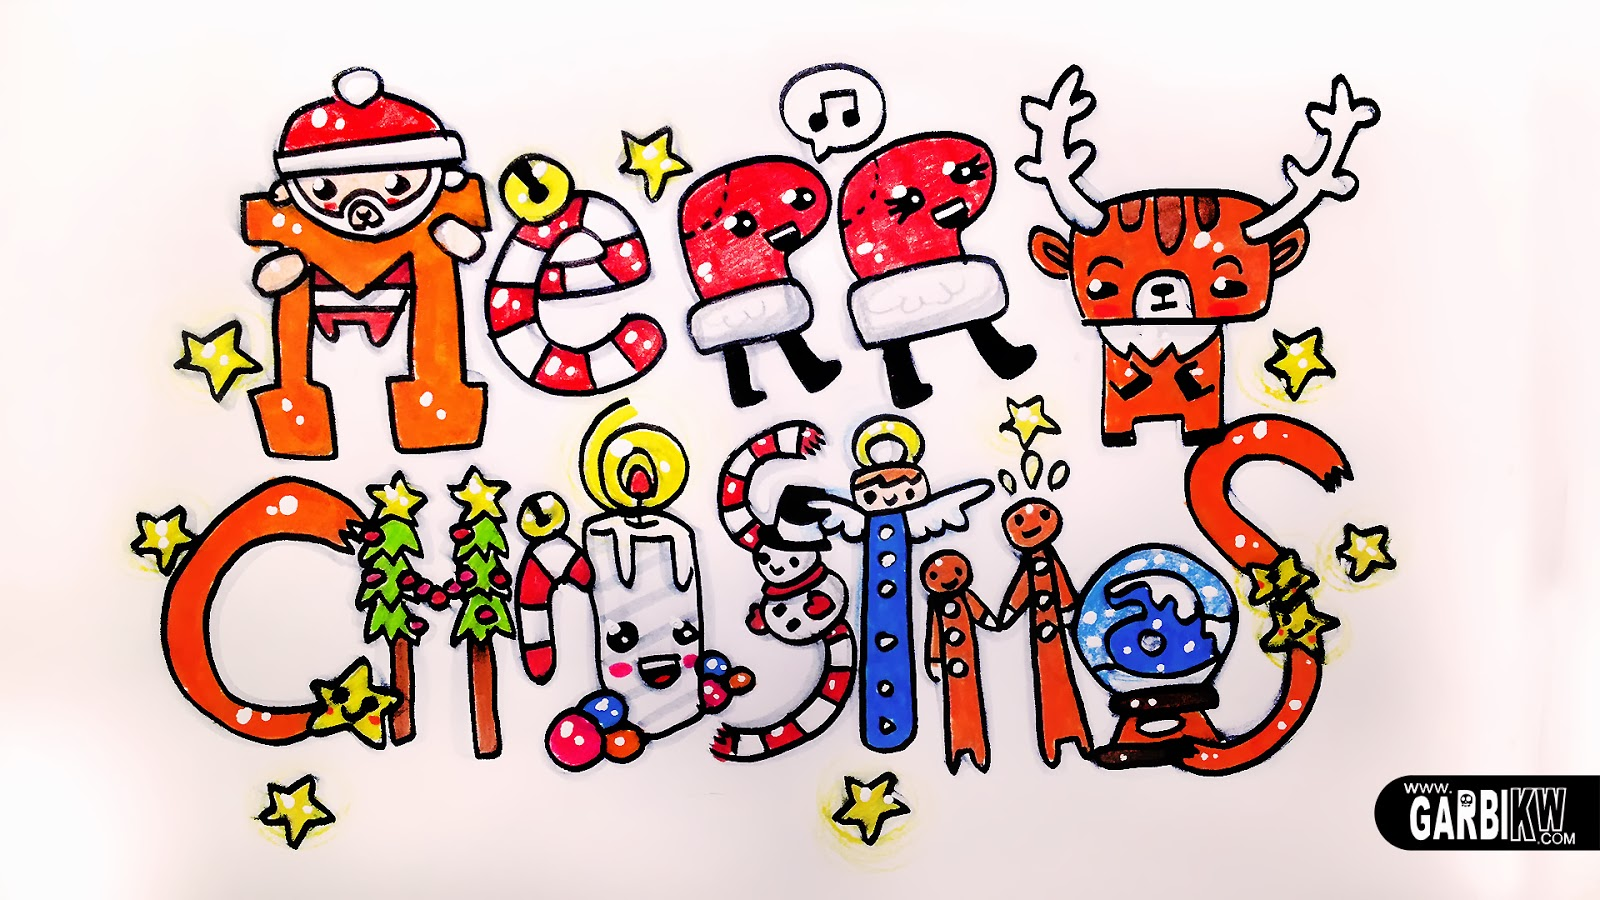 merry christmas how to draw cute and kawaii letters by garbi kw